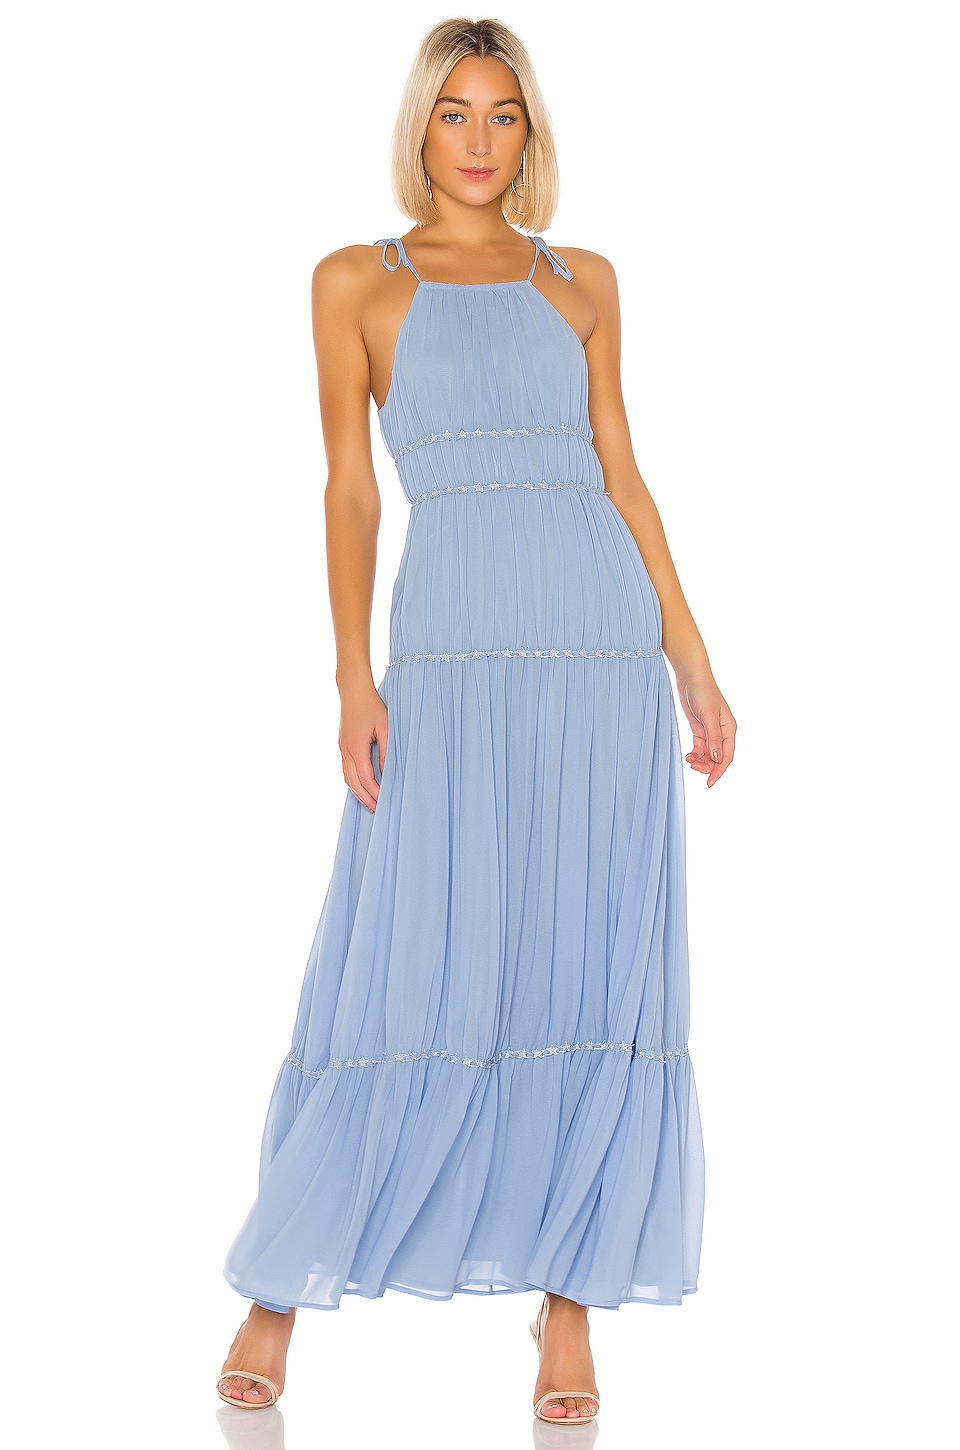 Lovers + Friends Lucy Maxi Dress in Powder Blue